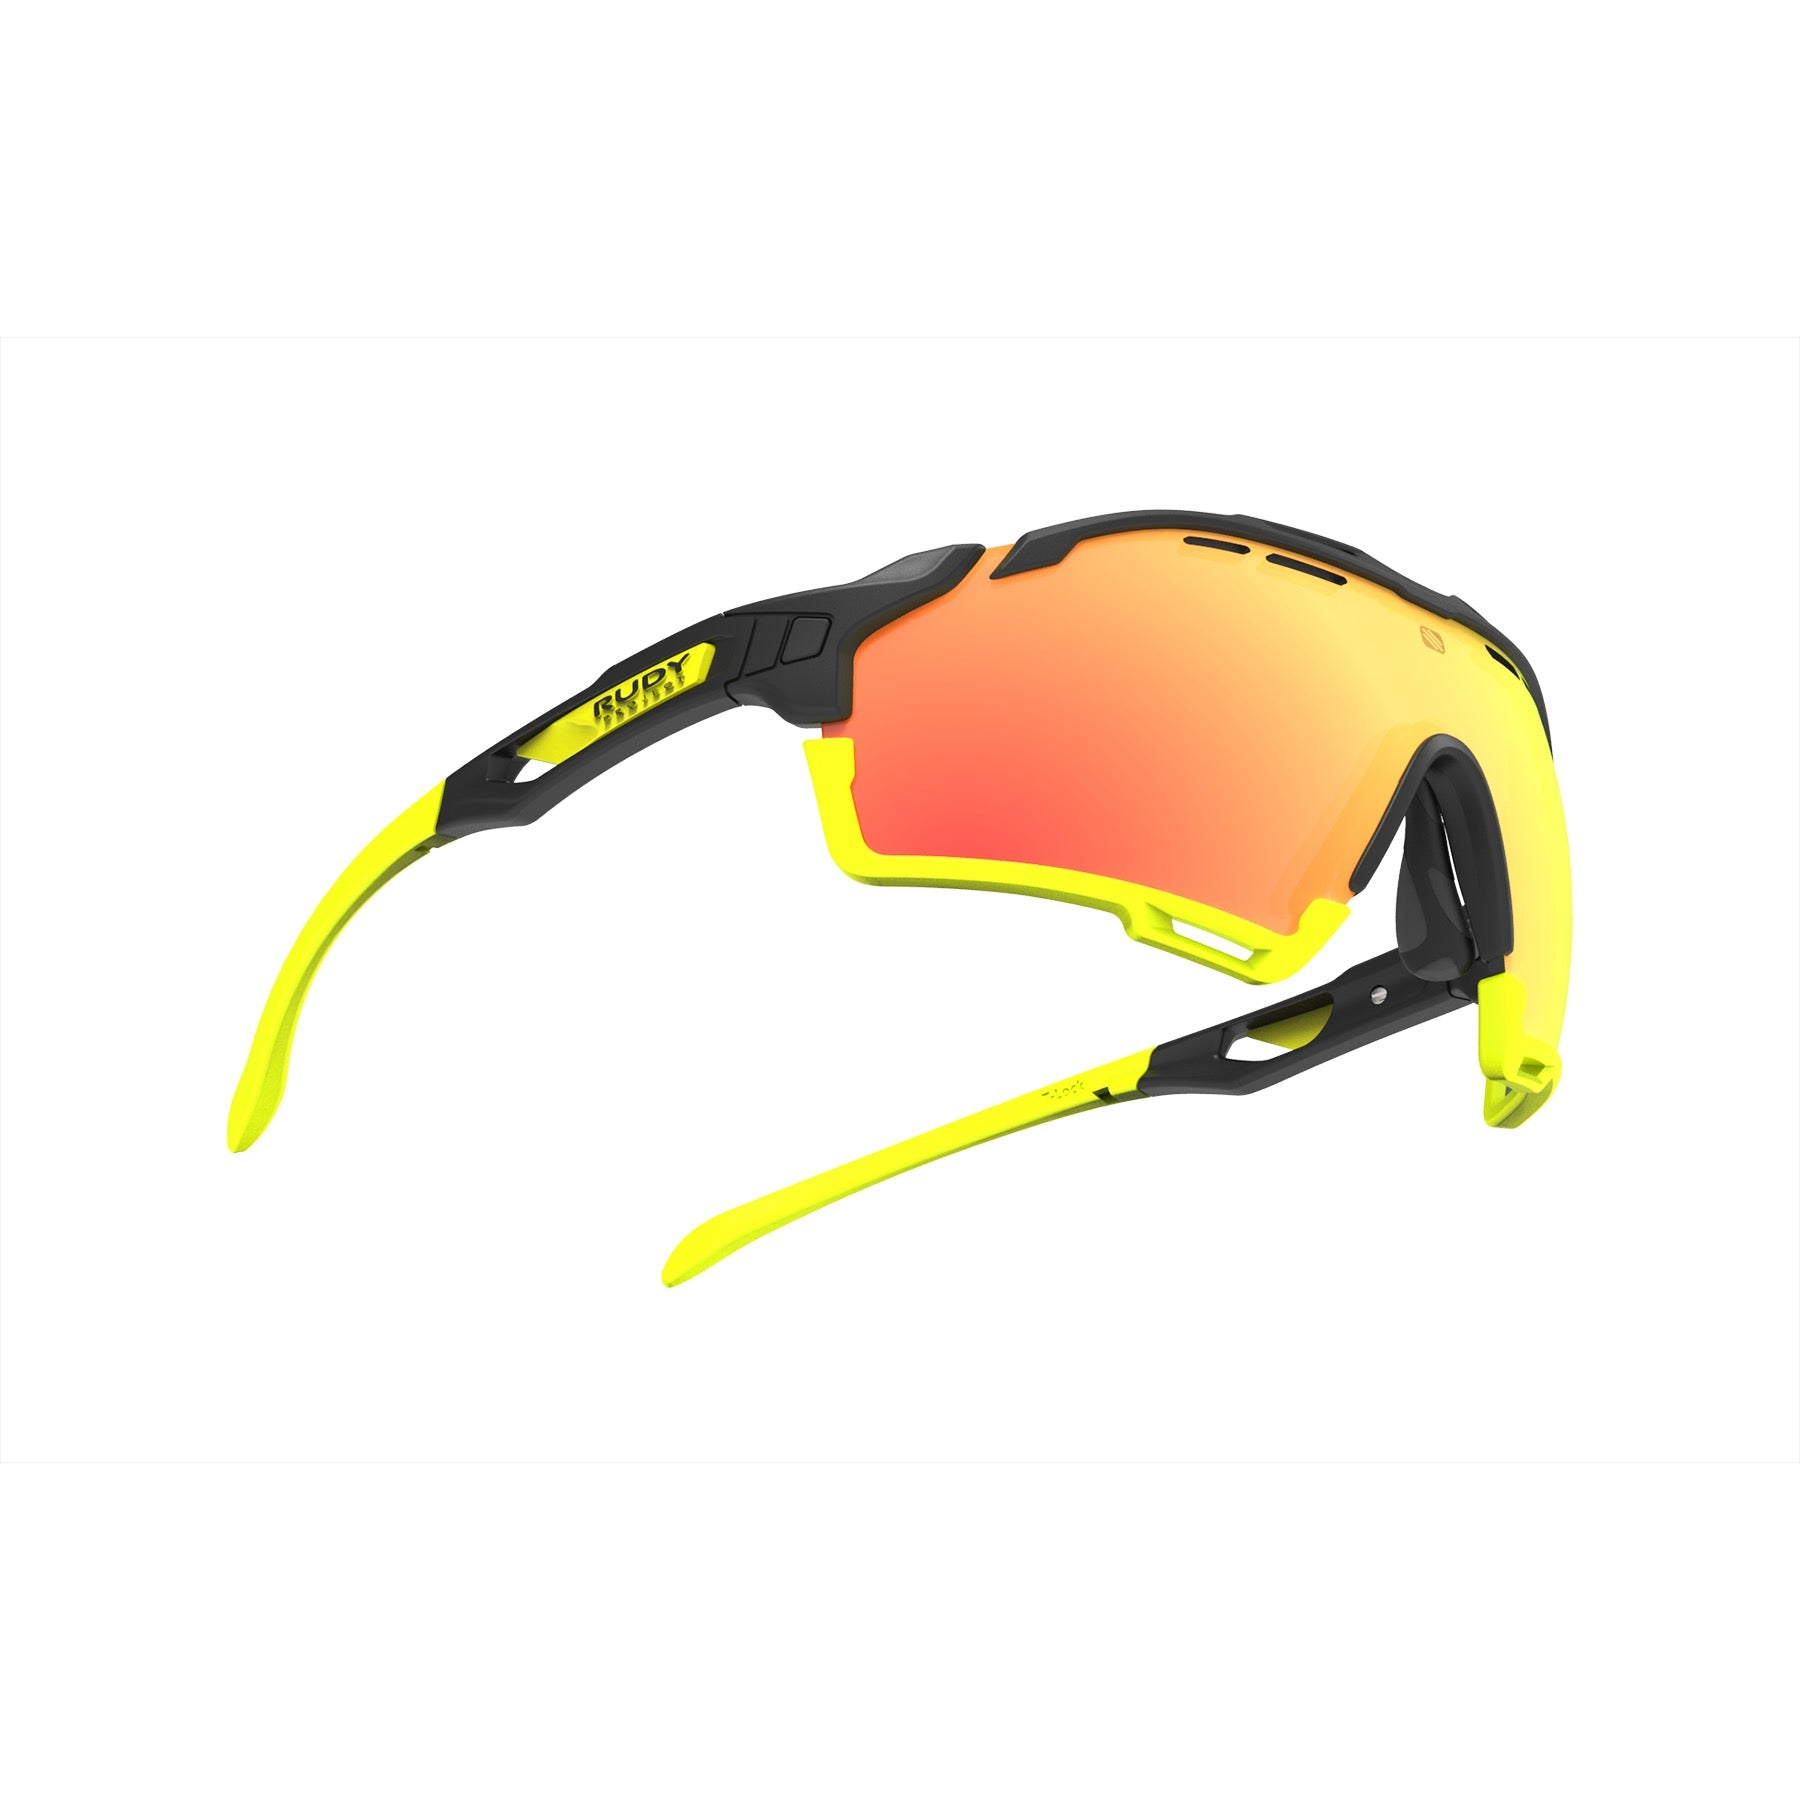 Rudy Project - cutline - frame color: Matte Black - lens color: Multilaser Orange - Bumper Color: Yellow Fluo - photo angle: Bottom Front Angle Variant Hover Image